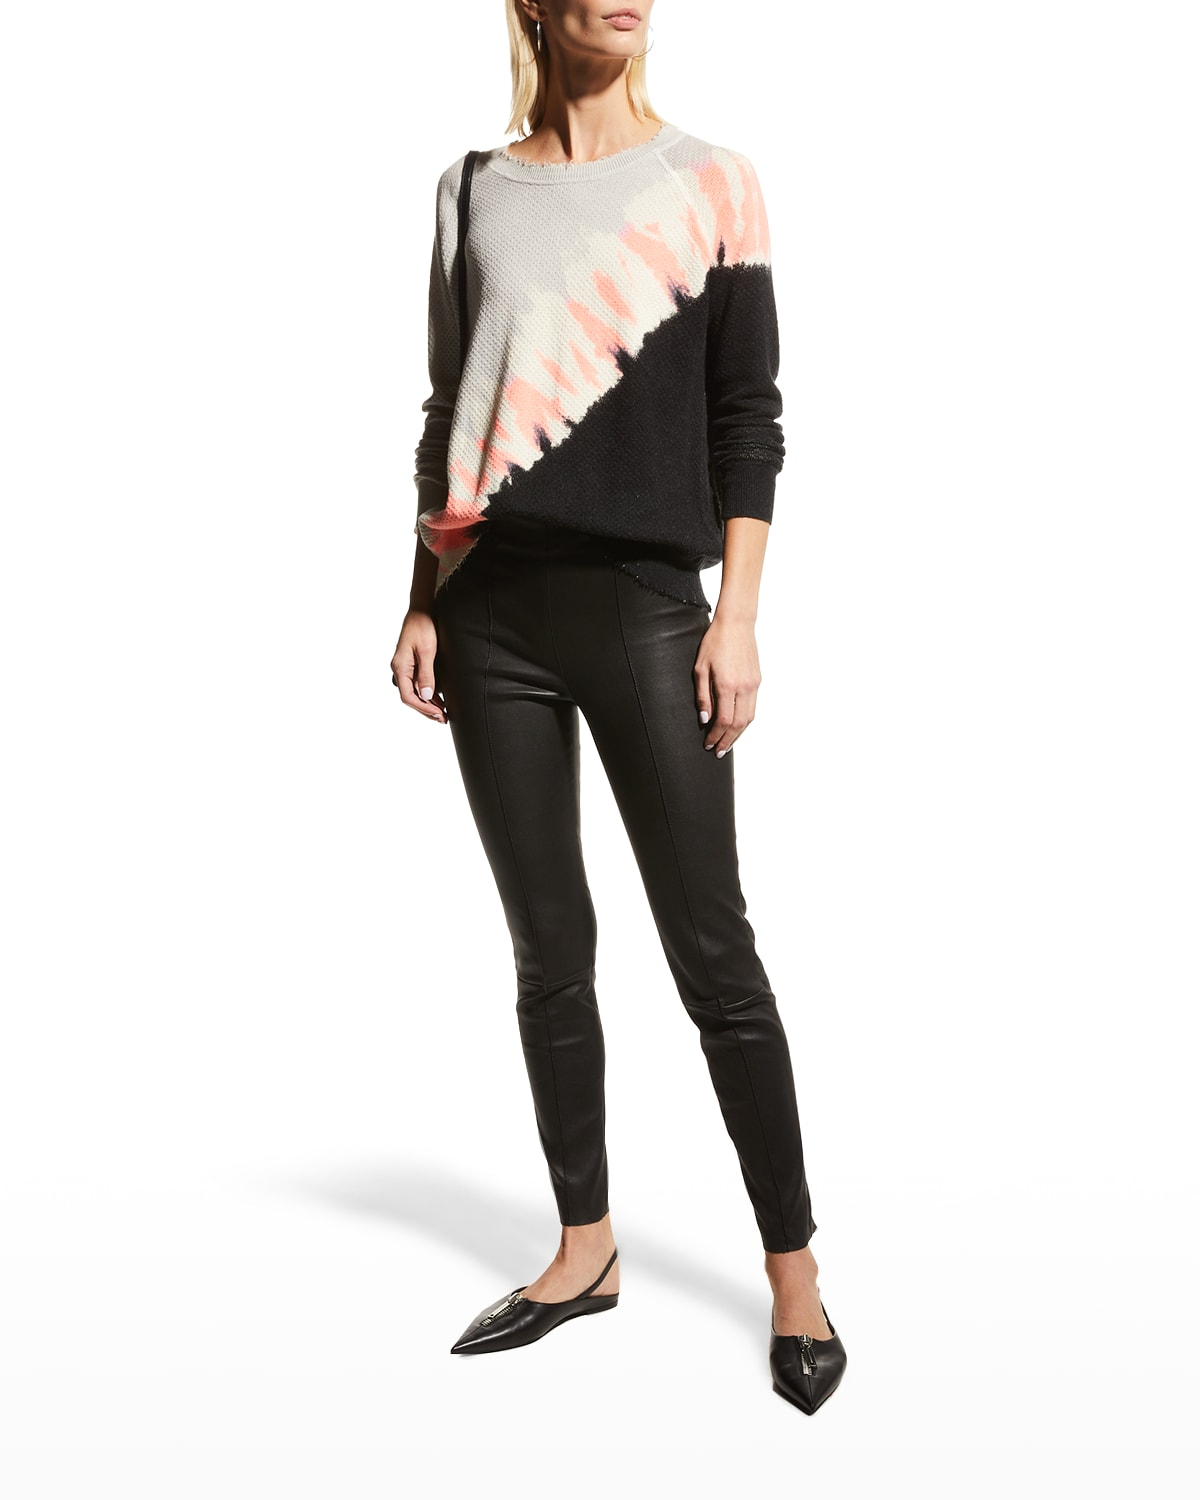 The Eclipse Printed Sweater